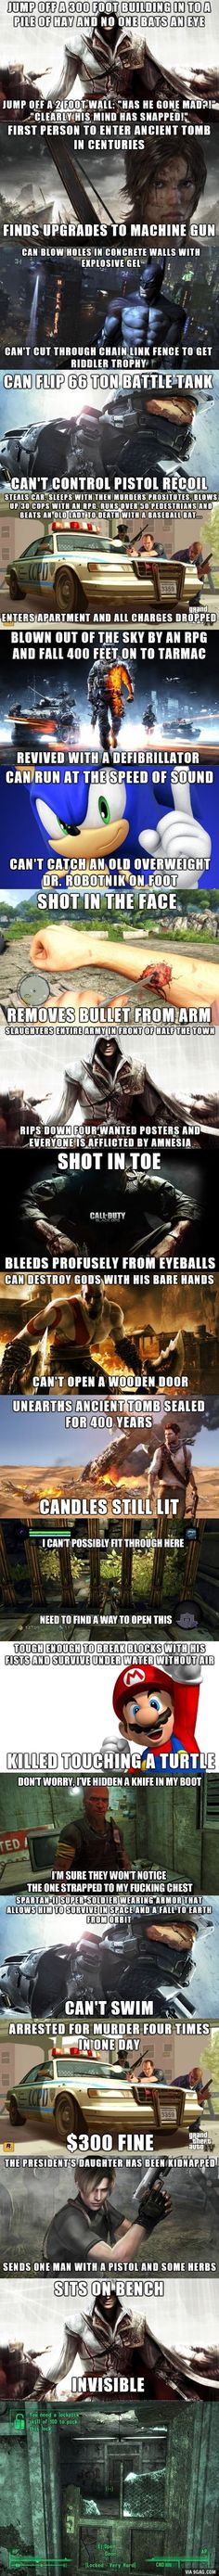 Video Game logic...Kassie will appreciate this even more than me.: